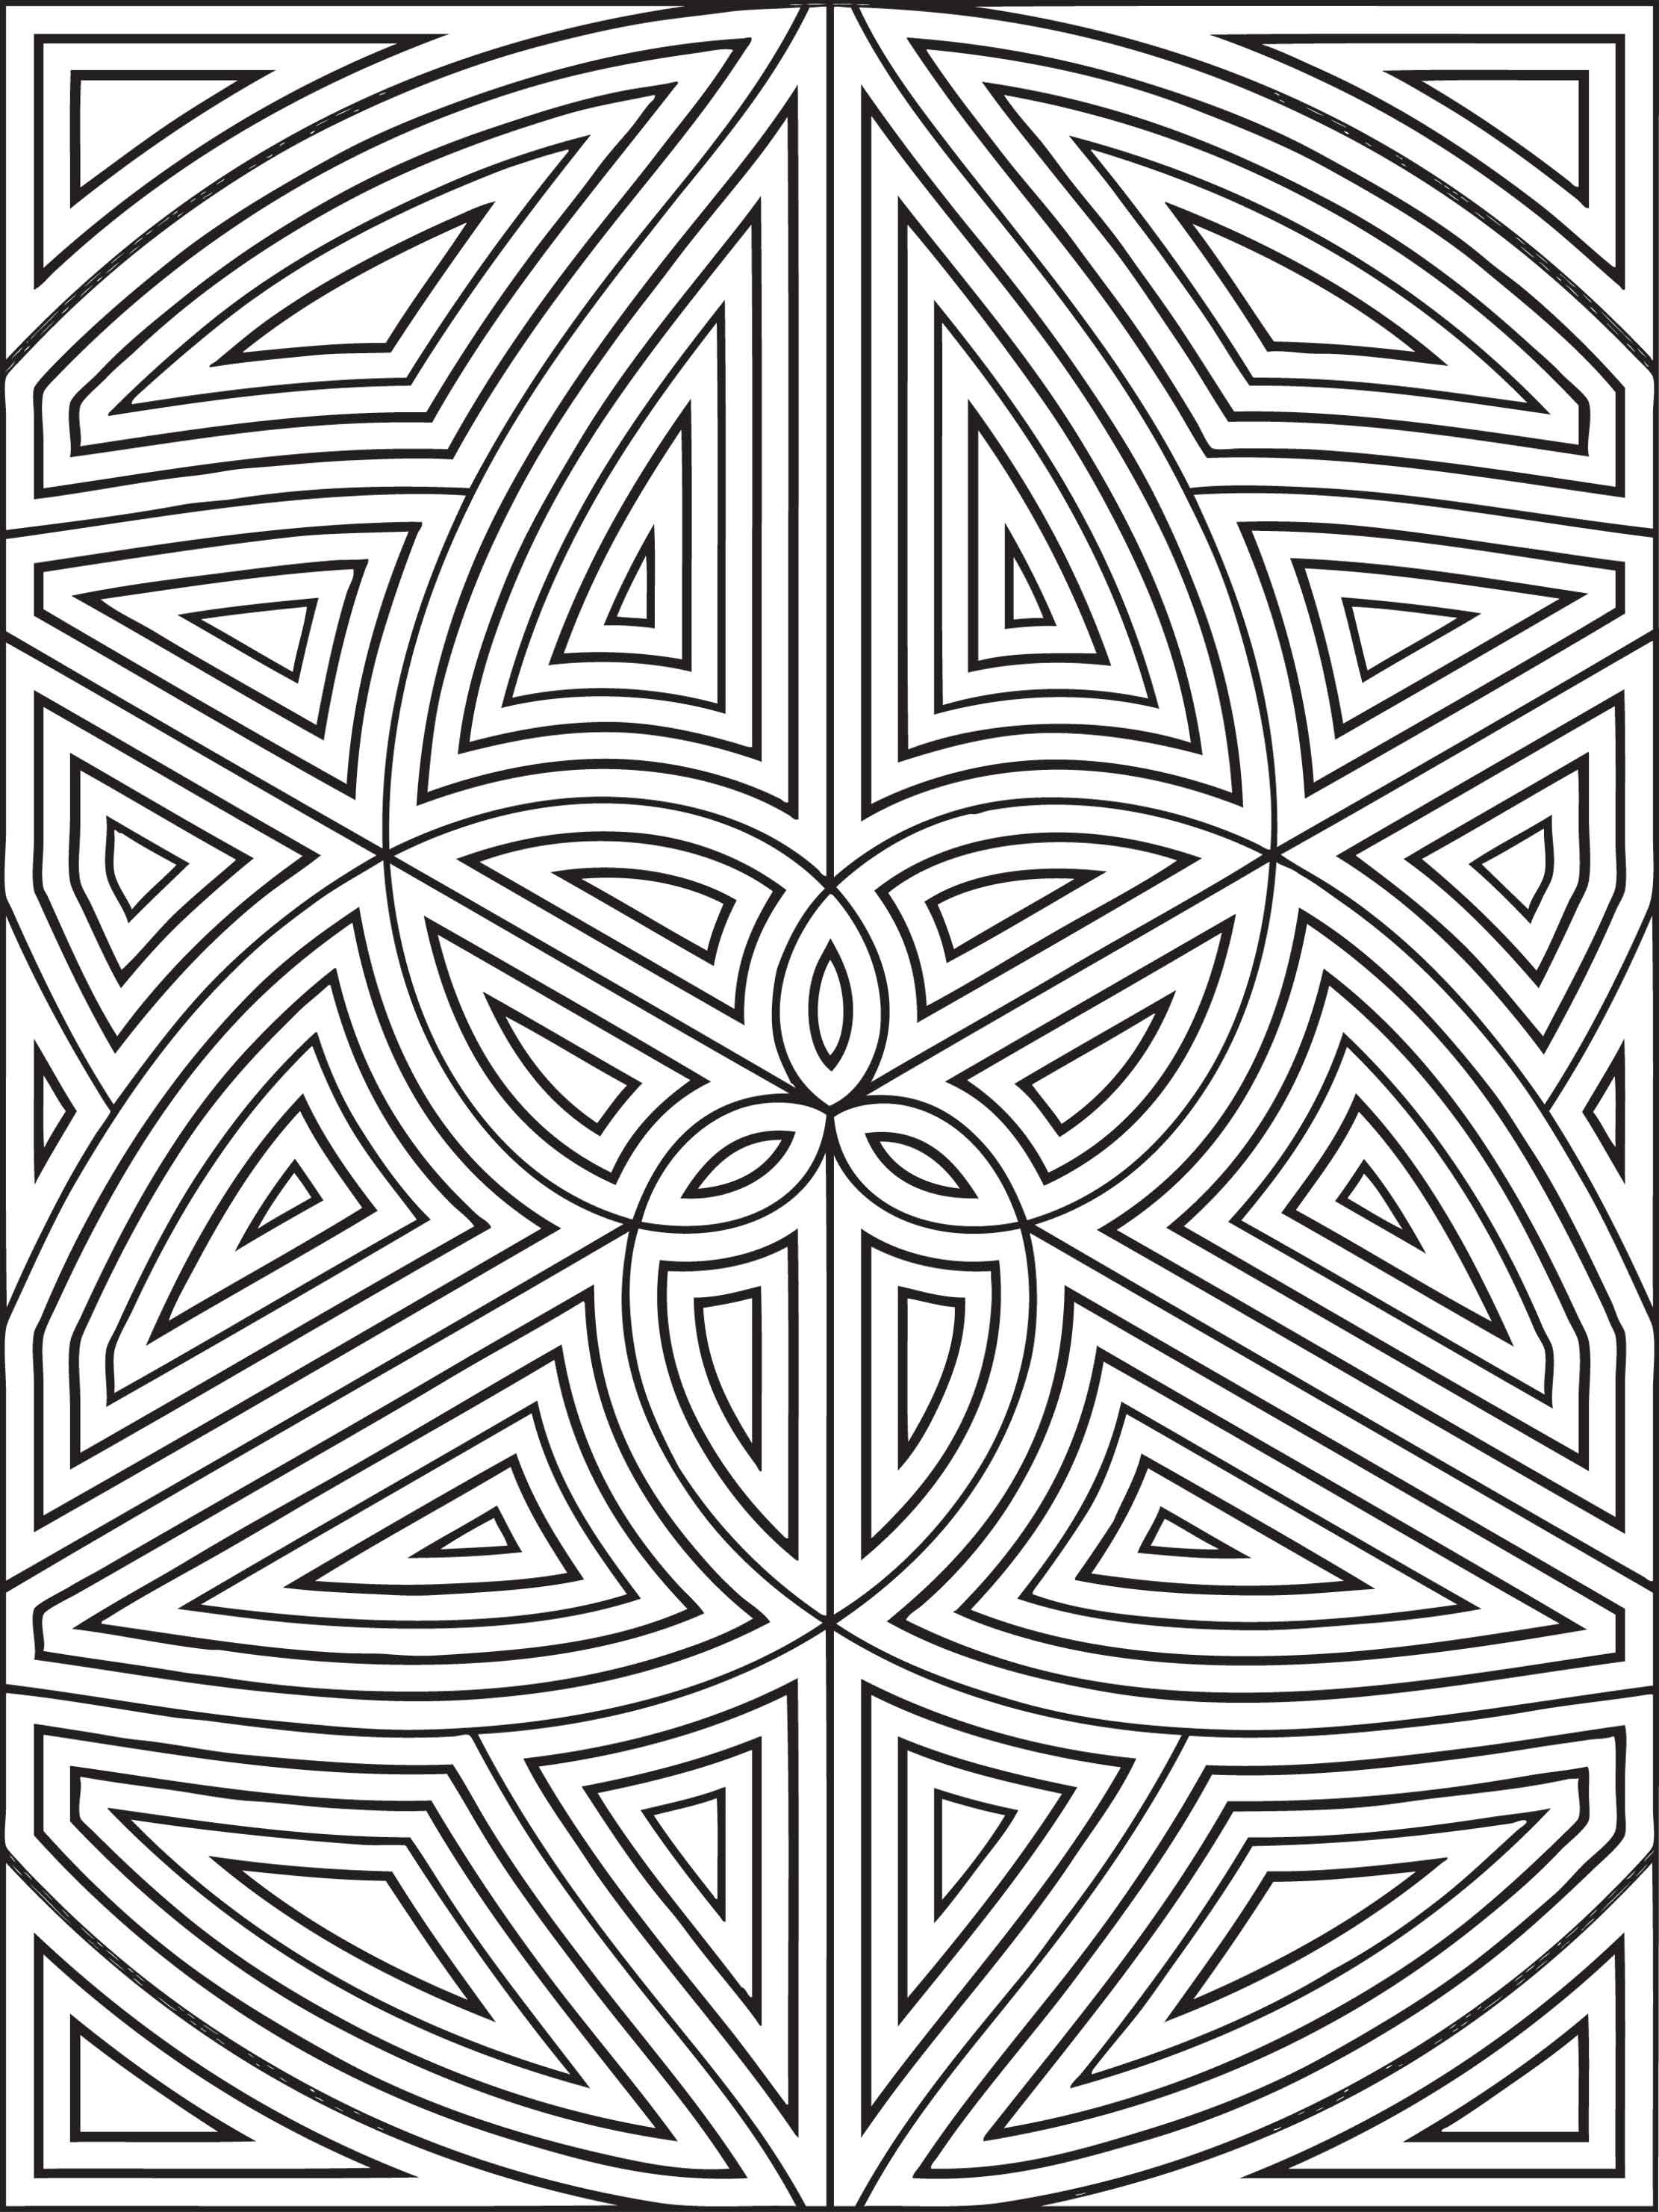 coloring pages of different shapes - photo#19